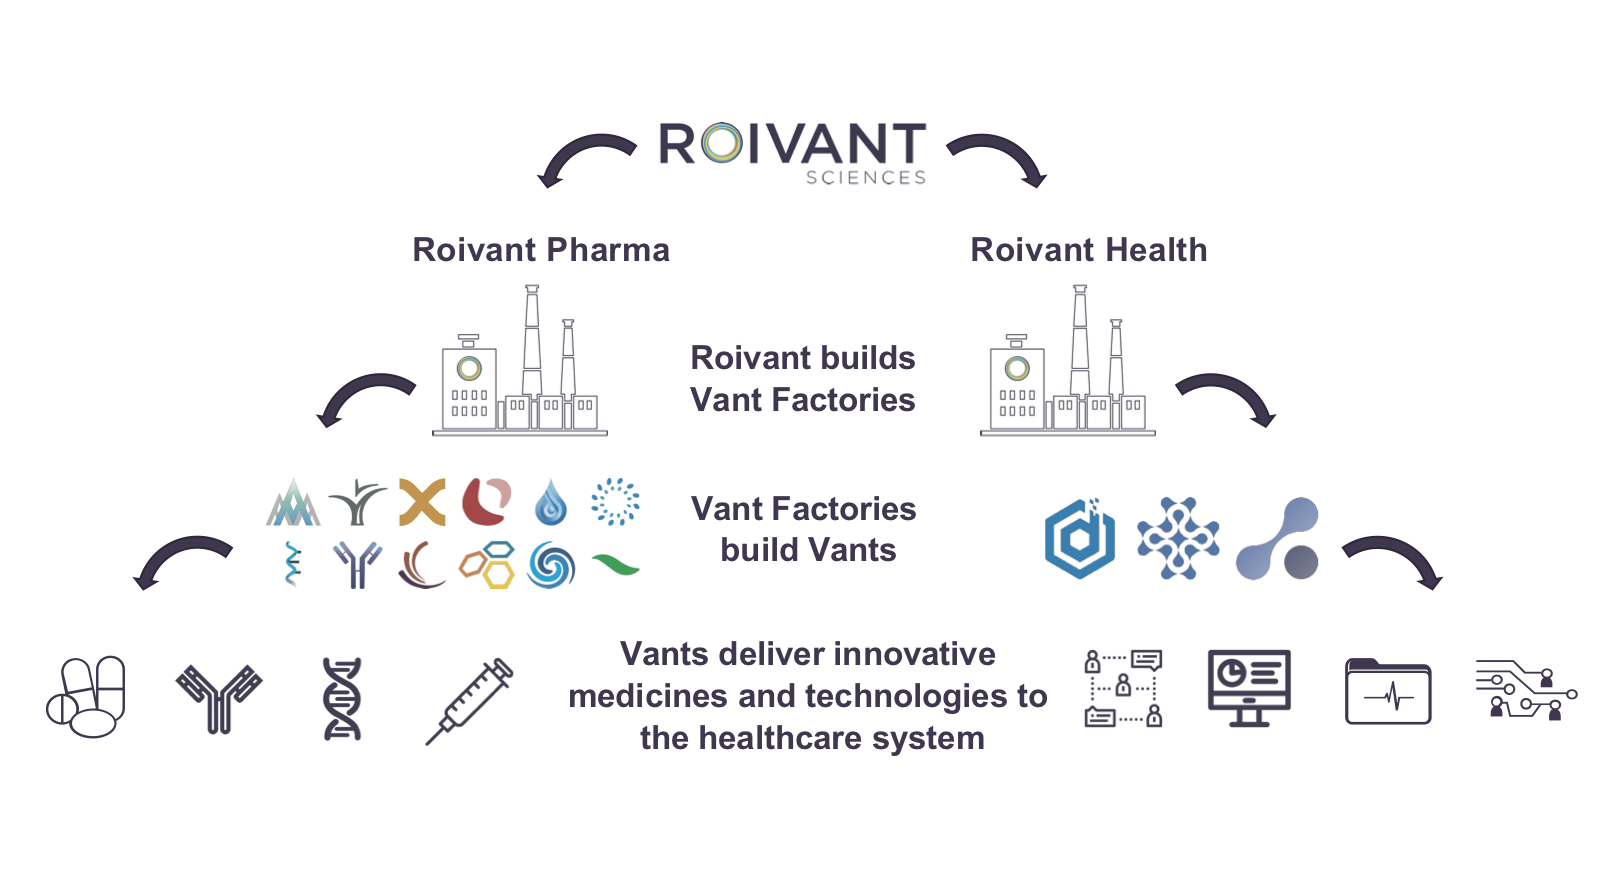 Roivant Sciences: Reinventing what a large pharma company of the